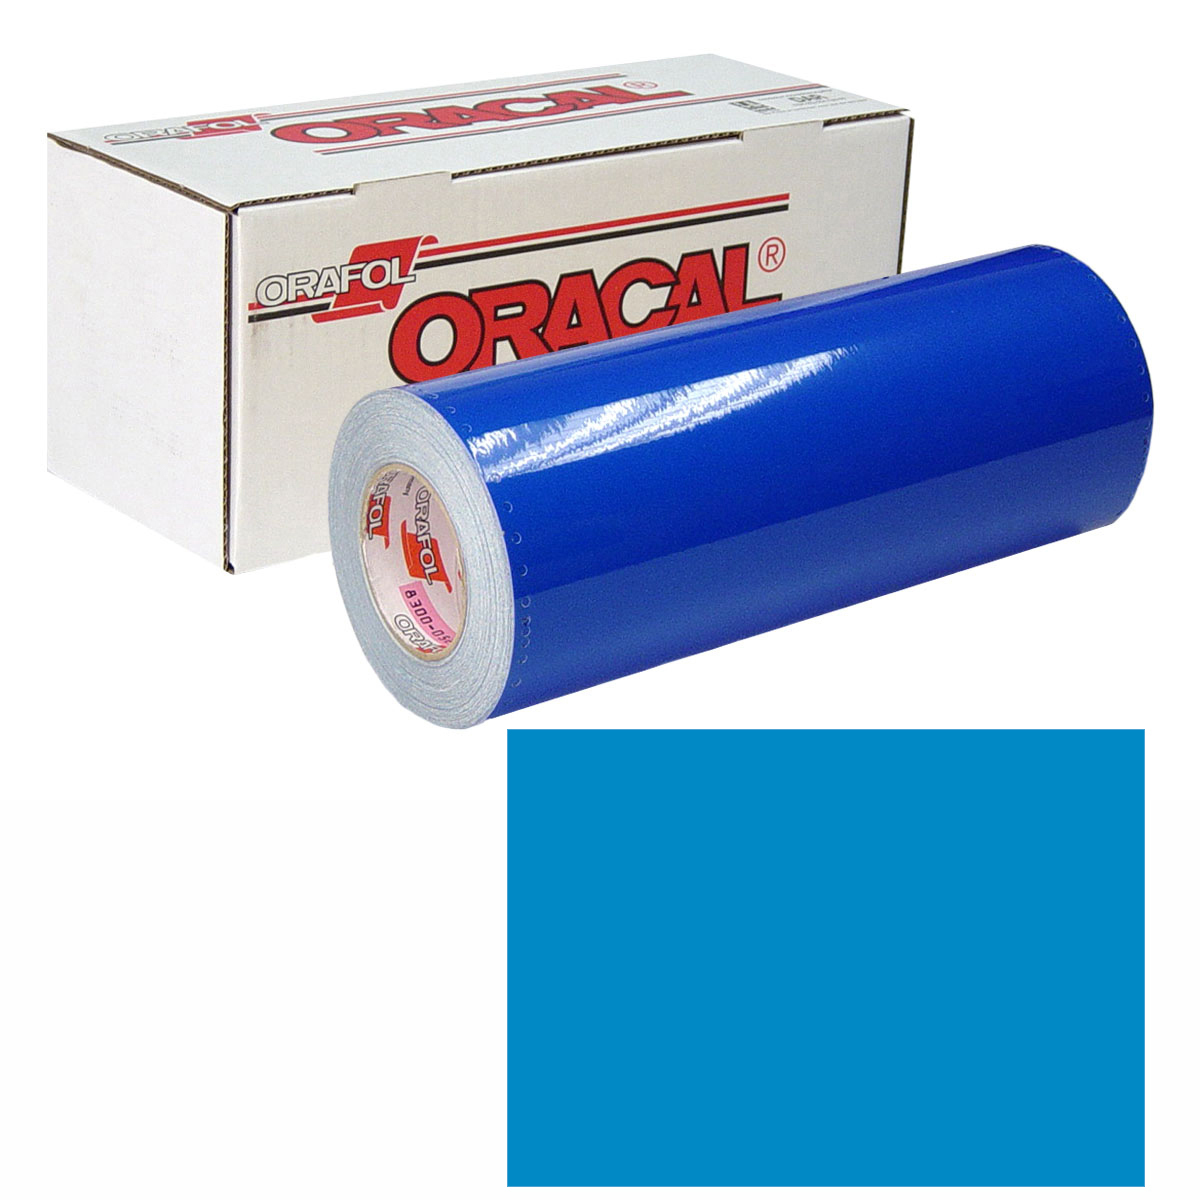 ORACAL 631 Unp 48in X 50yd 053 Light Blue